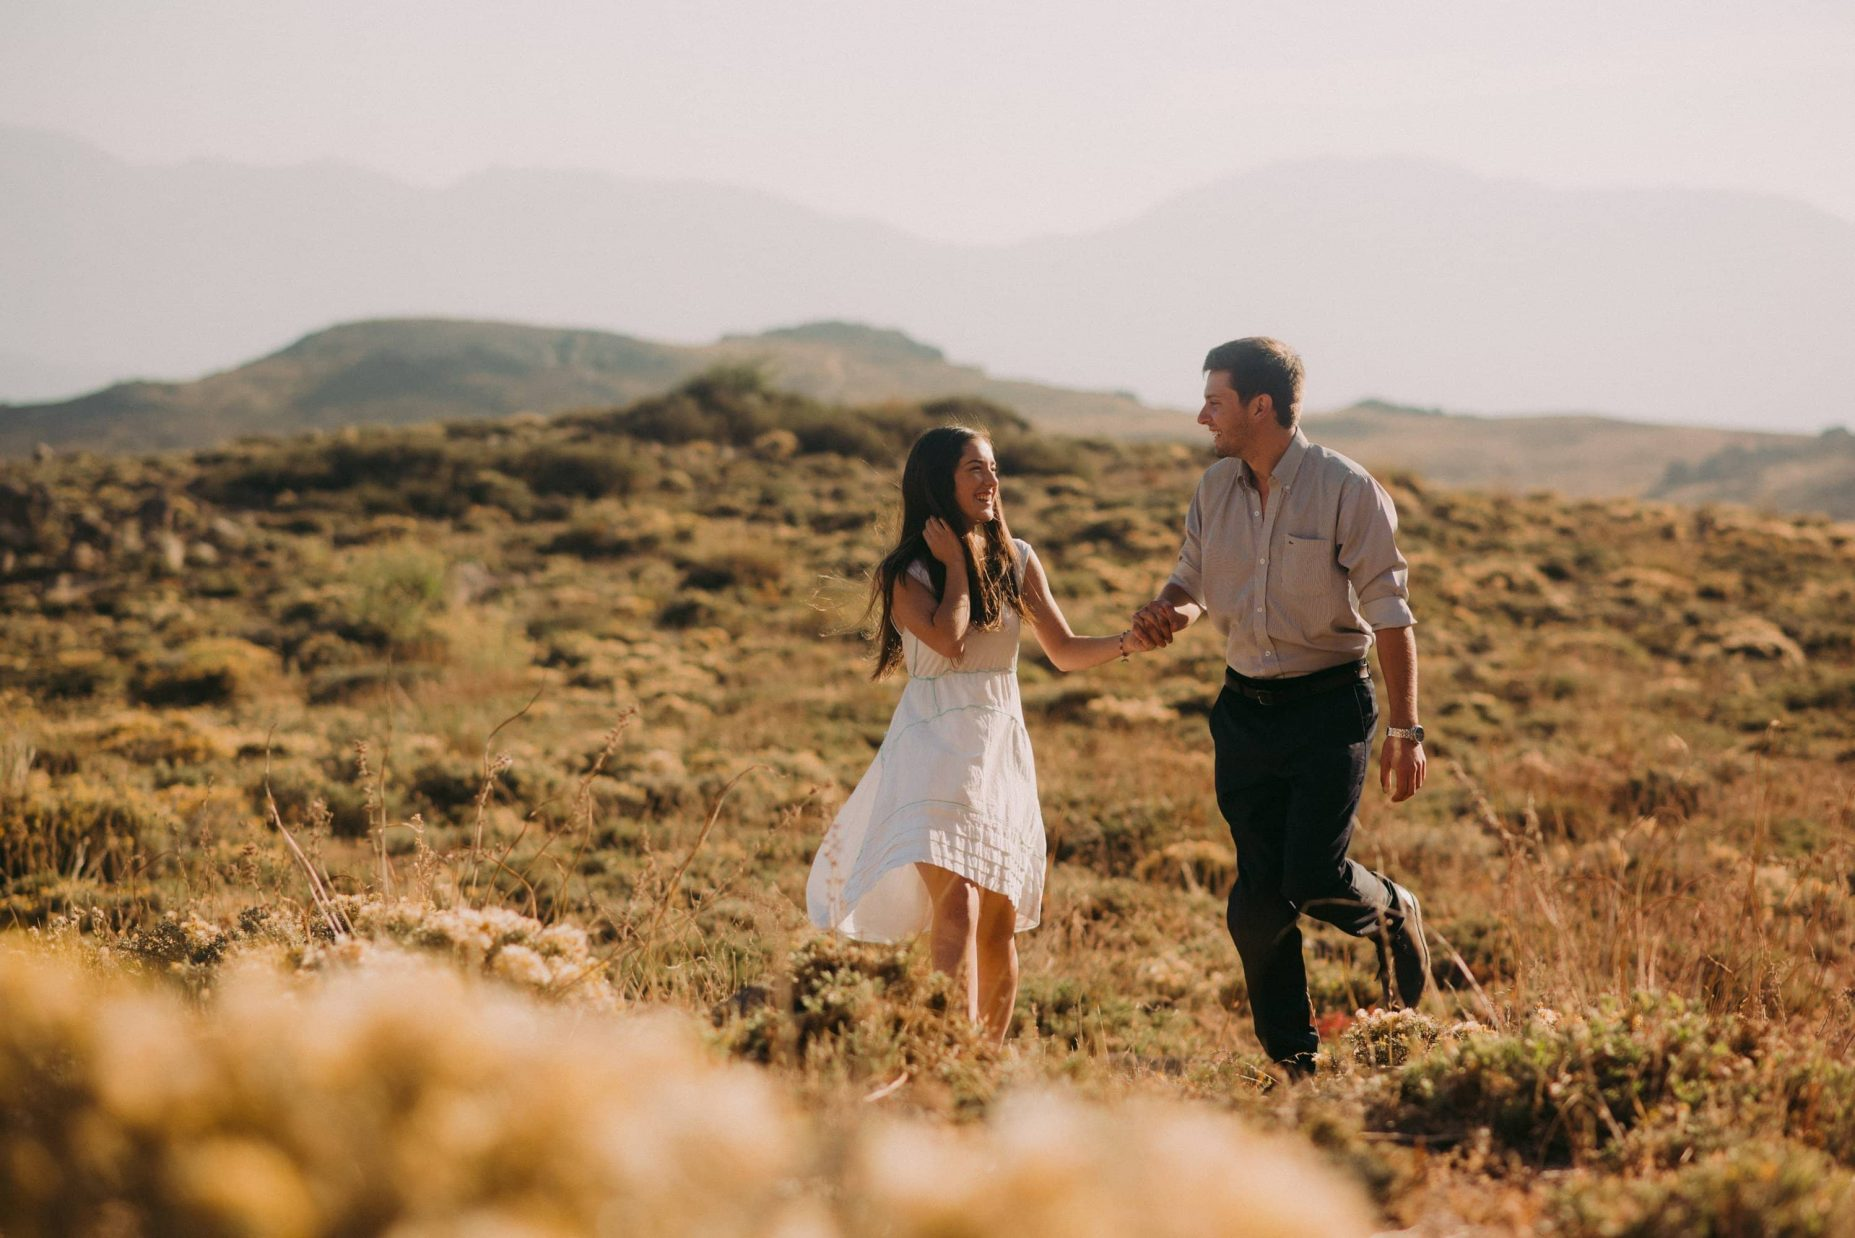 Elope wedding ideas Chile